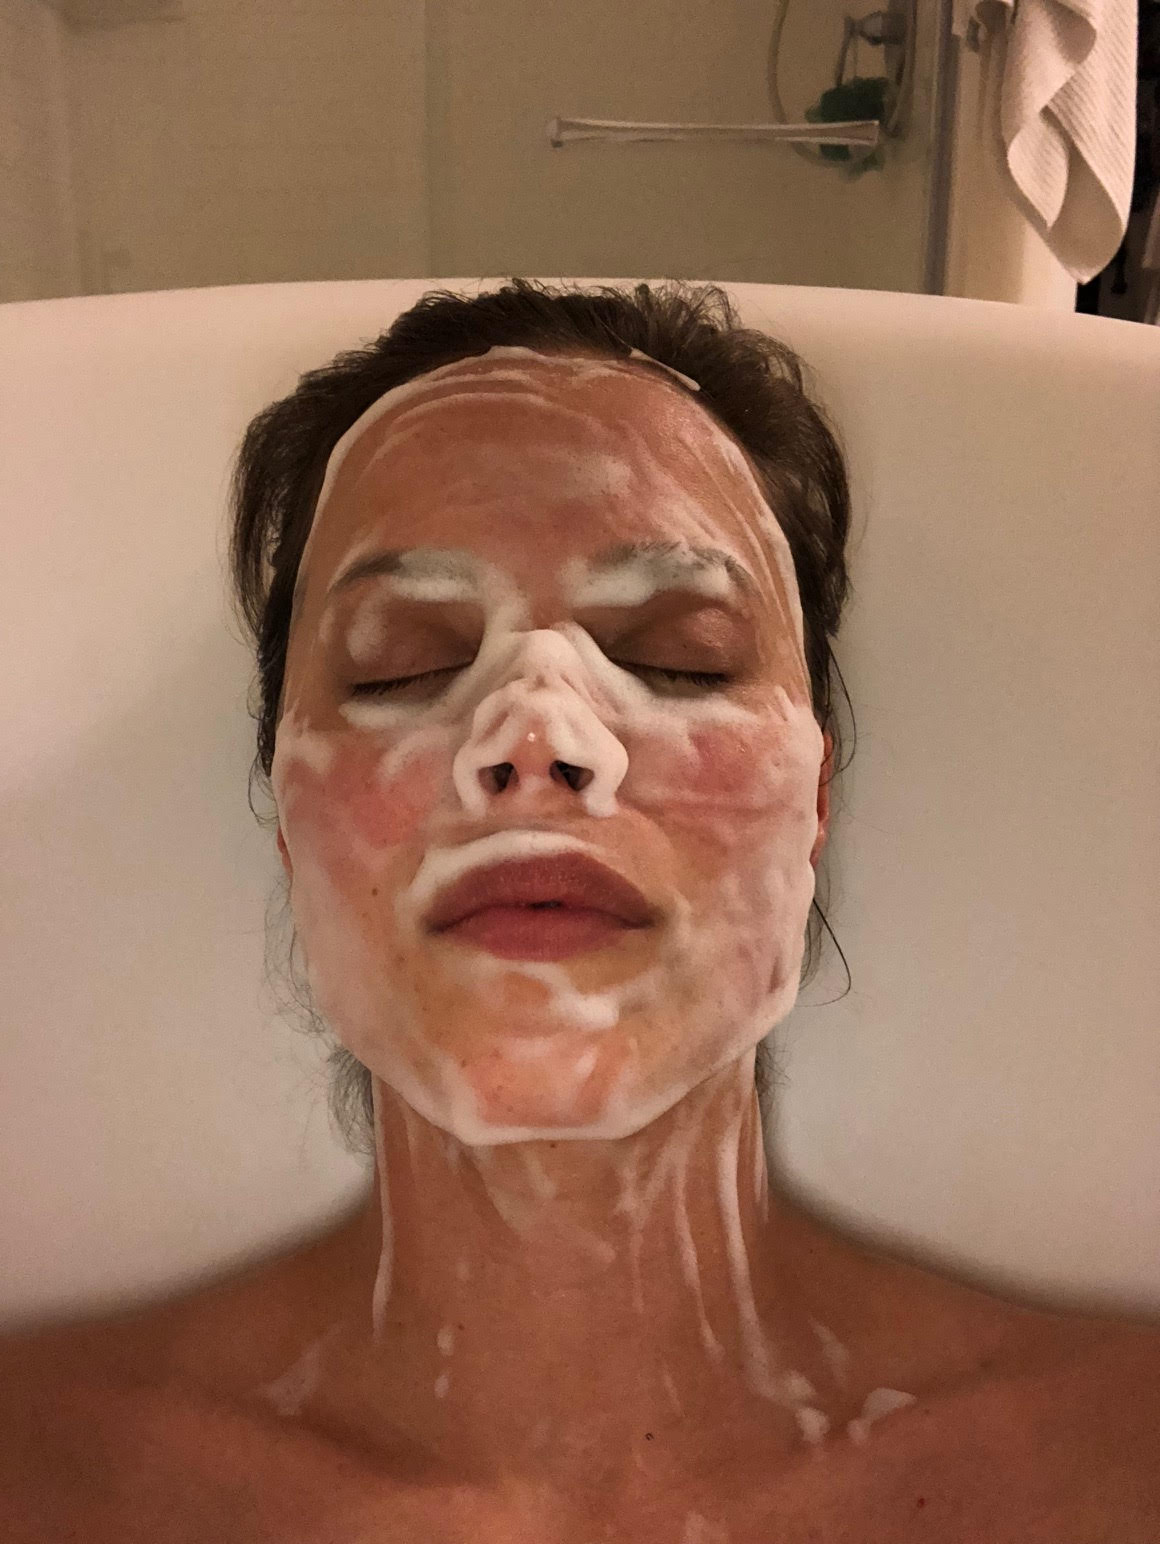 #SkinBabe Katie Stam Irk commits to self-care at least 1x a week!